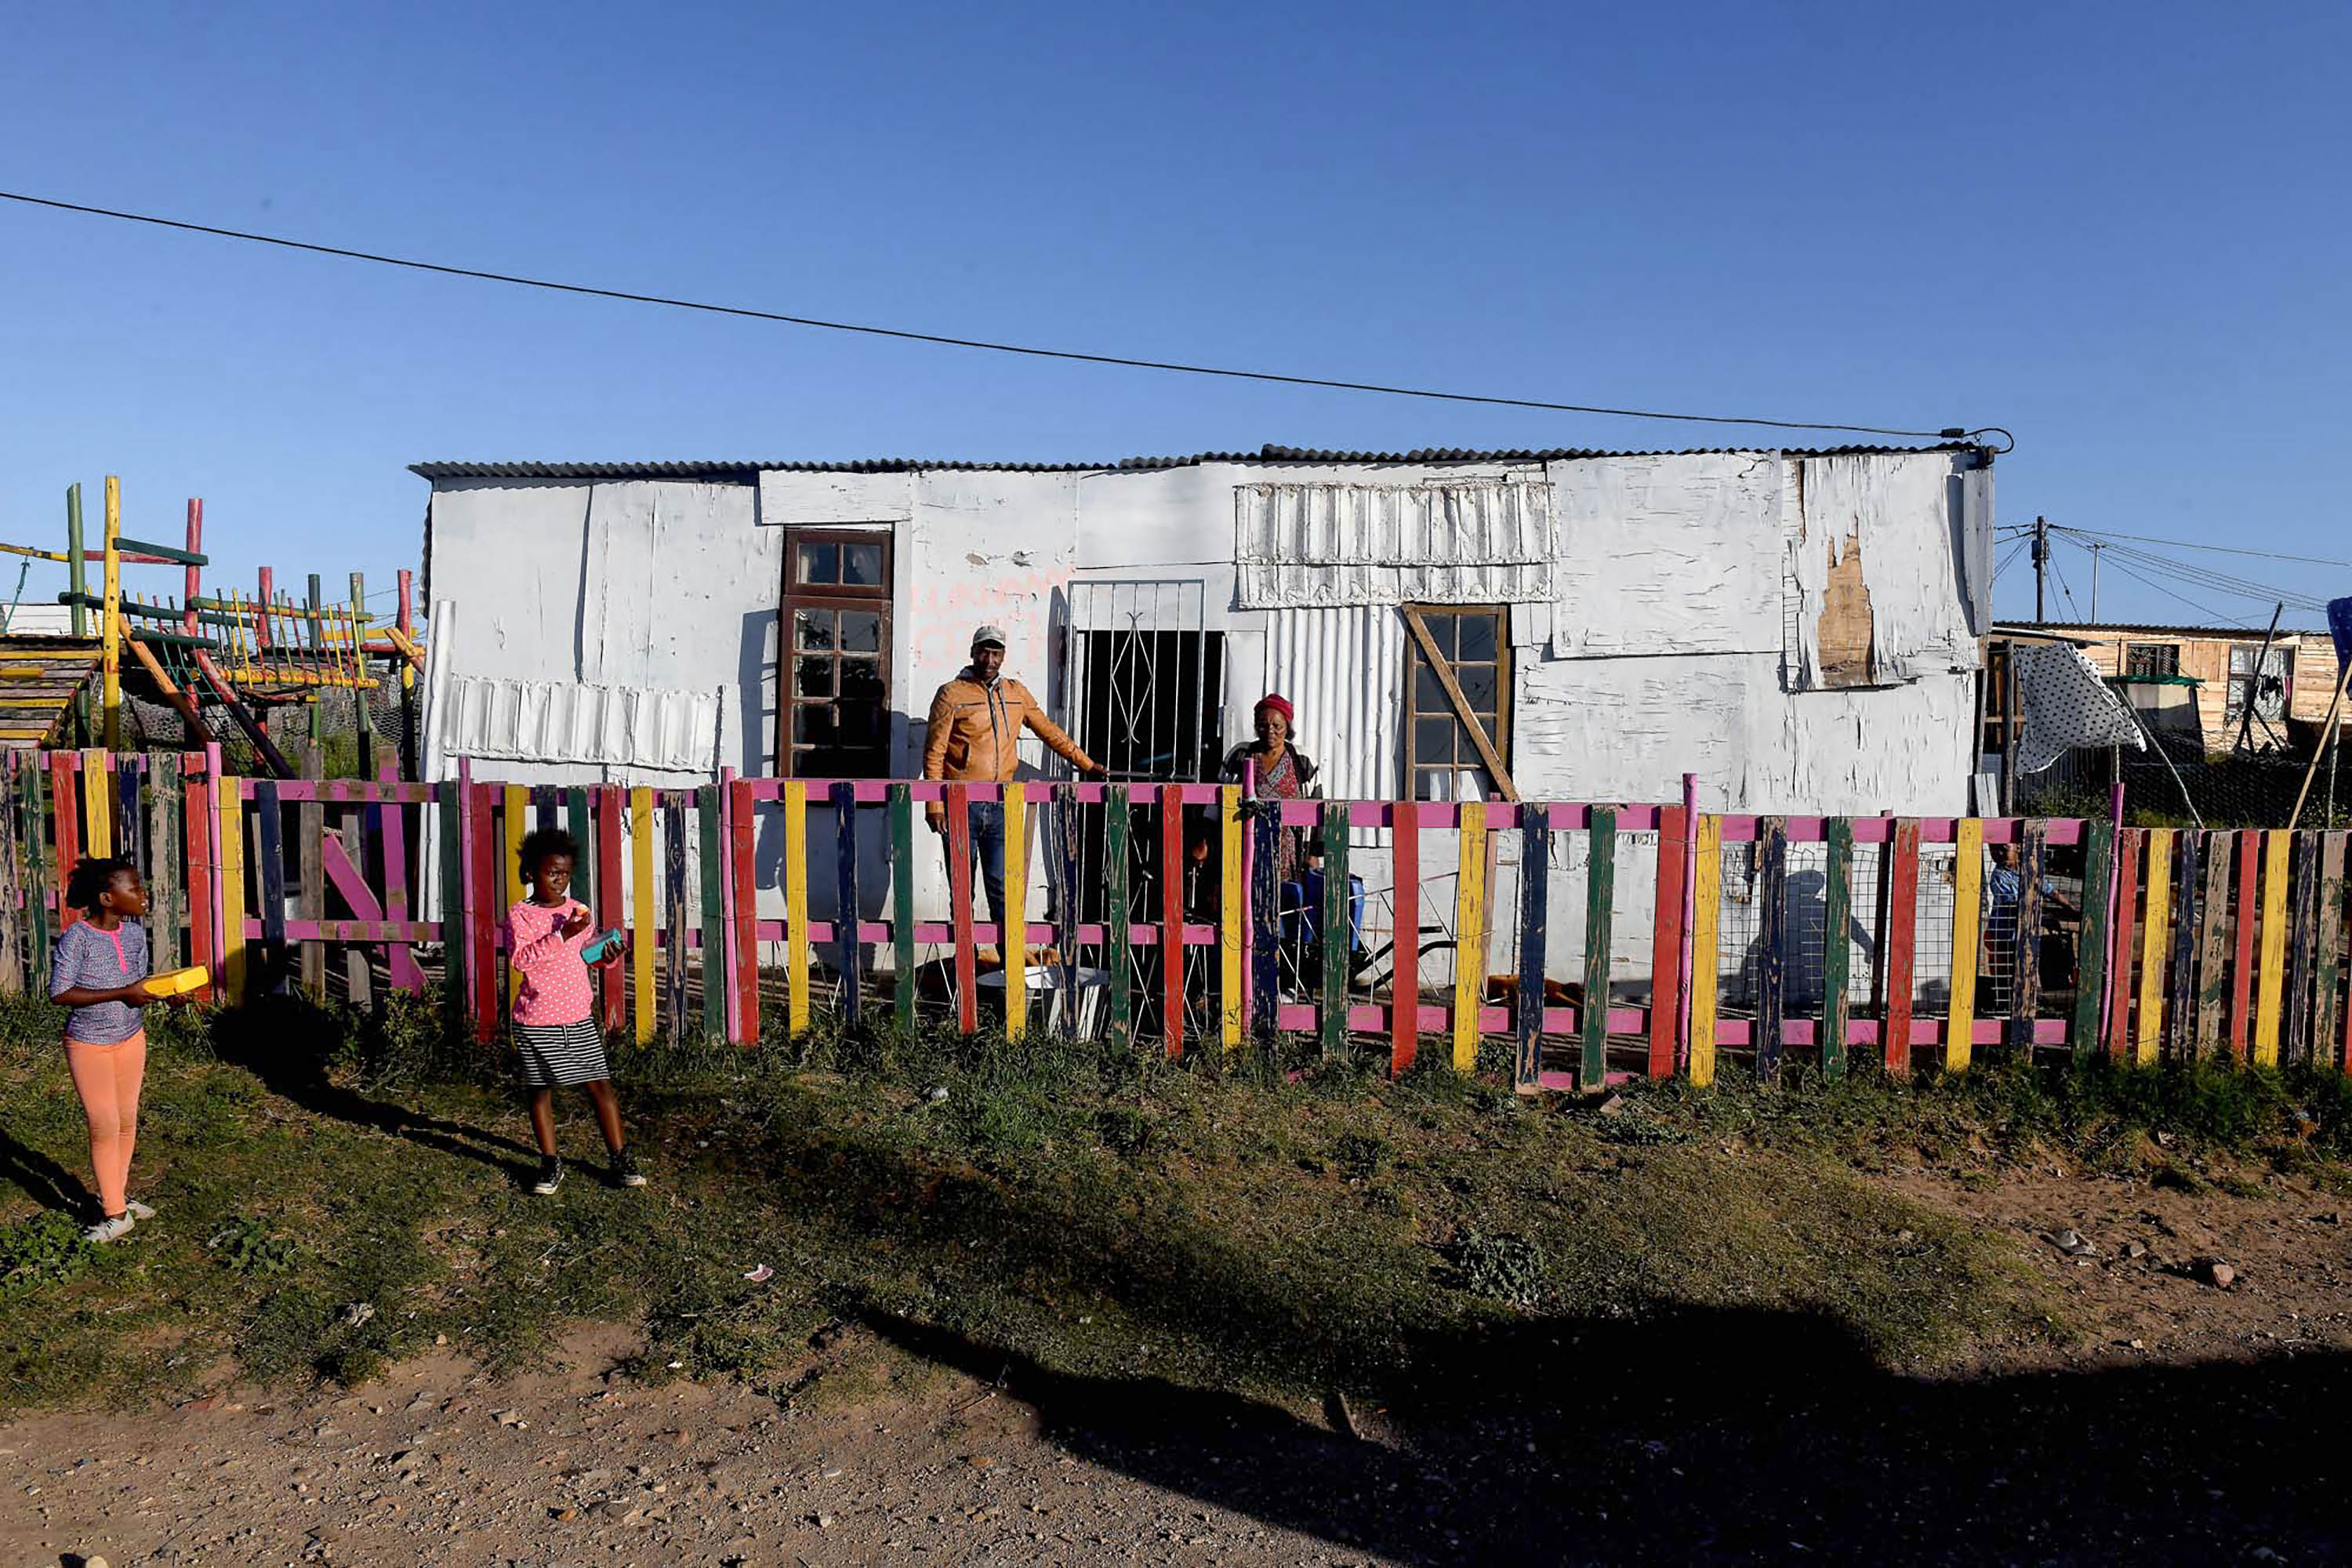 23 September 2019: Community leader Zama Mona (left) with Thobeka Mbanda, a creche owner in the shack settlement near the Nelson Mandela Bay airport.